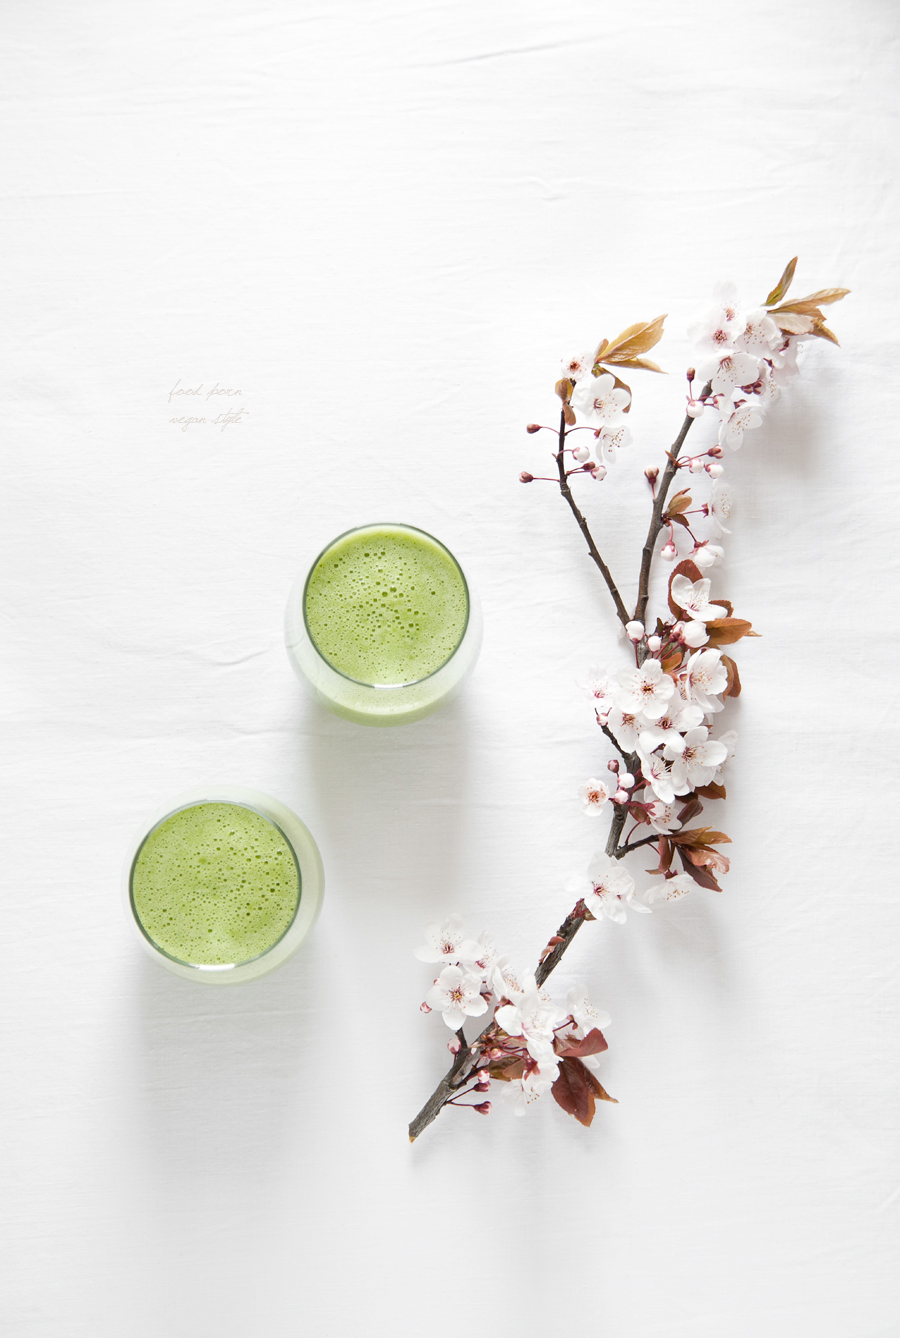 Green smoothie with pear, lime, spinach and wheatgrass juice